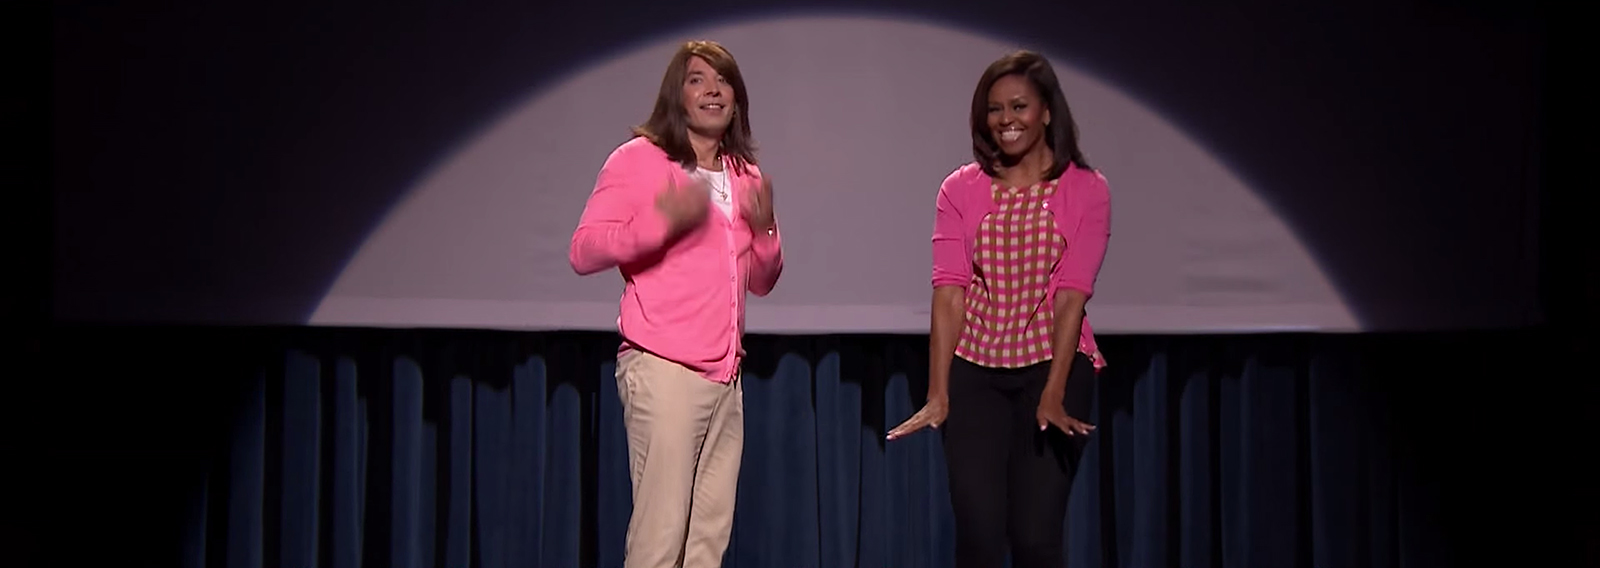 Evolution of Mom Dancing Part 2 <br> Michelle Obama &#038; Jimmy Fallon